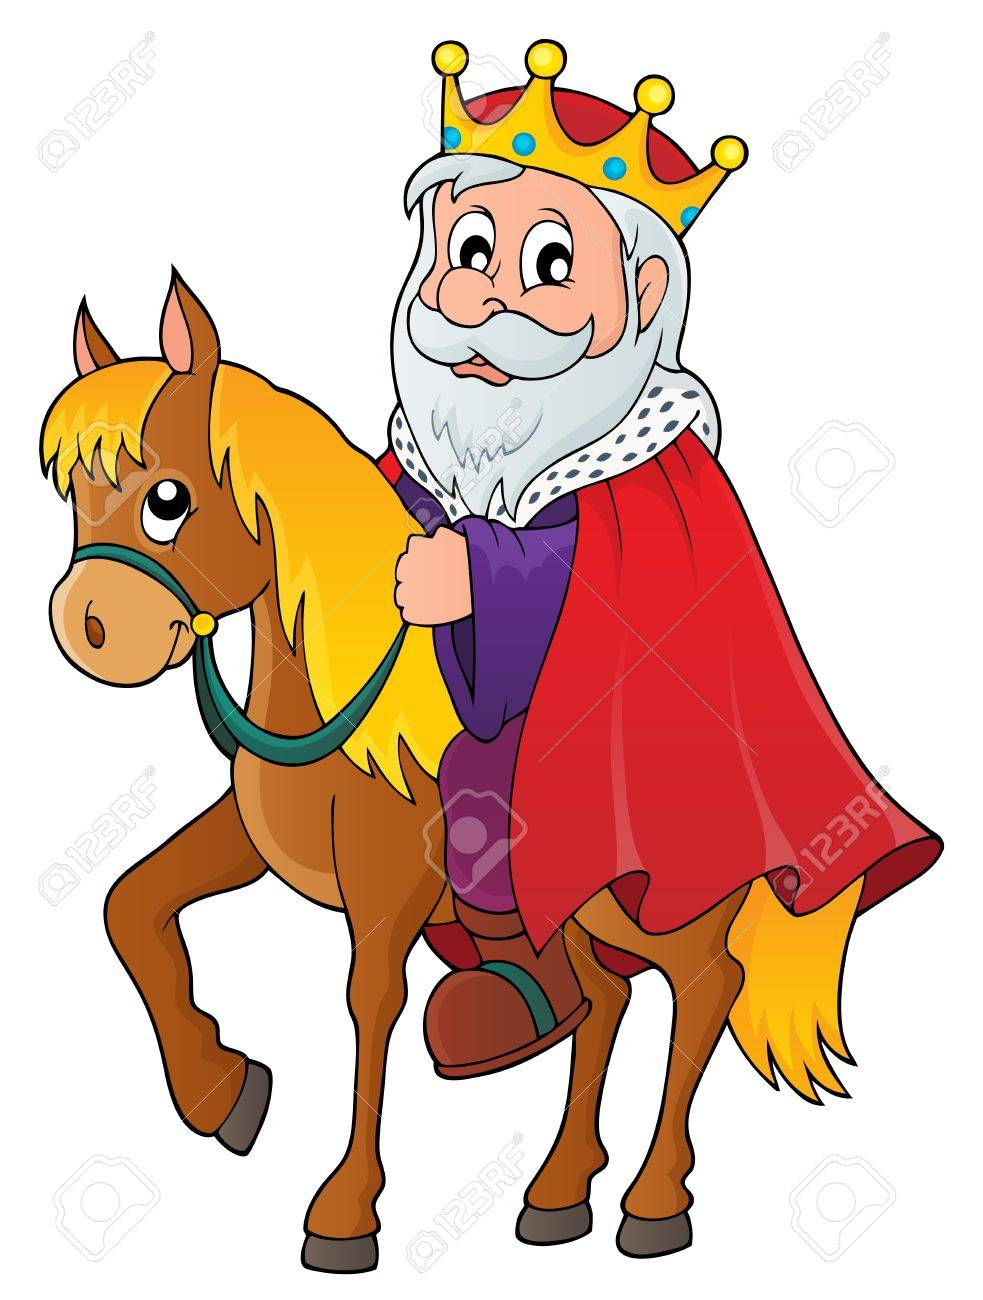 King On Horse Theme Image Royalty Free Cliparts Vectors And Stock Illustration Image 53431160